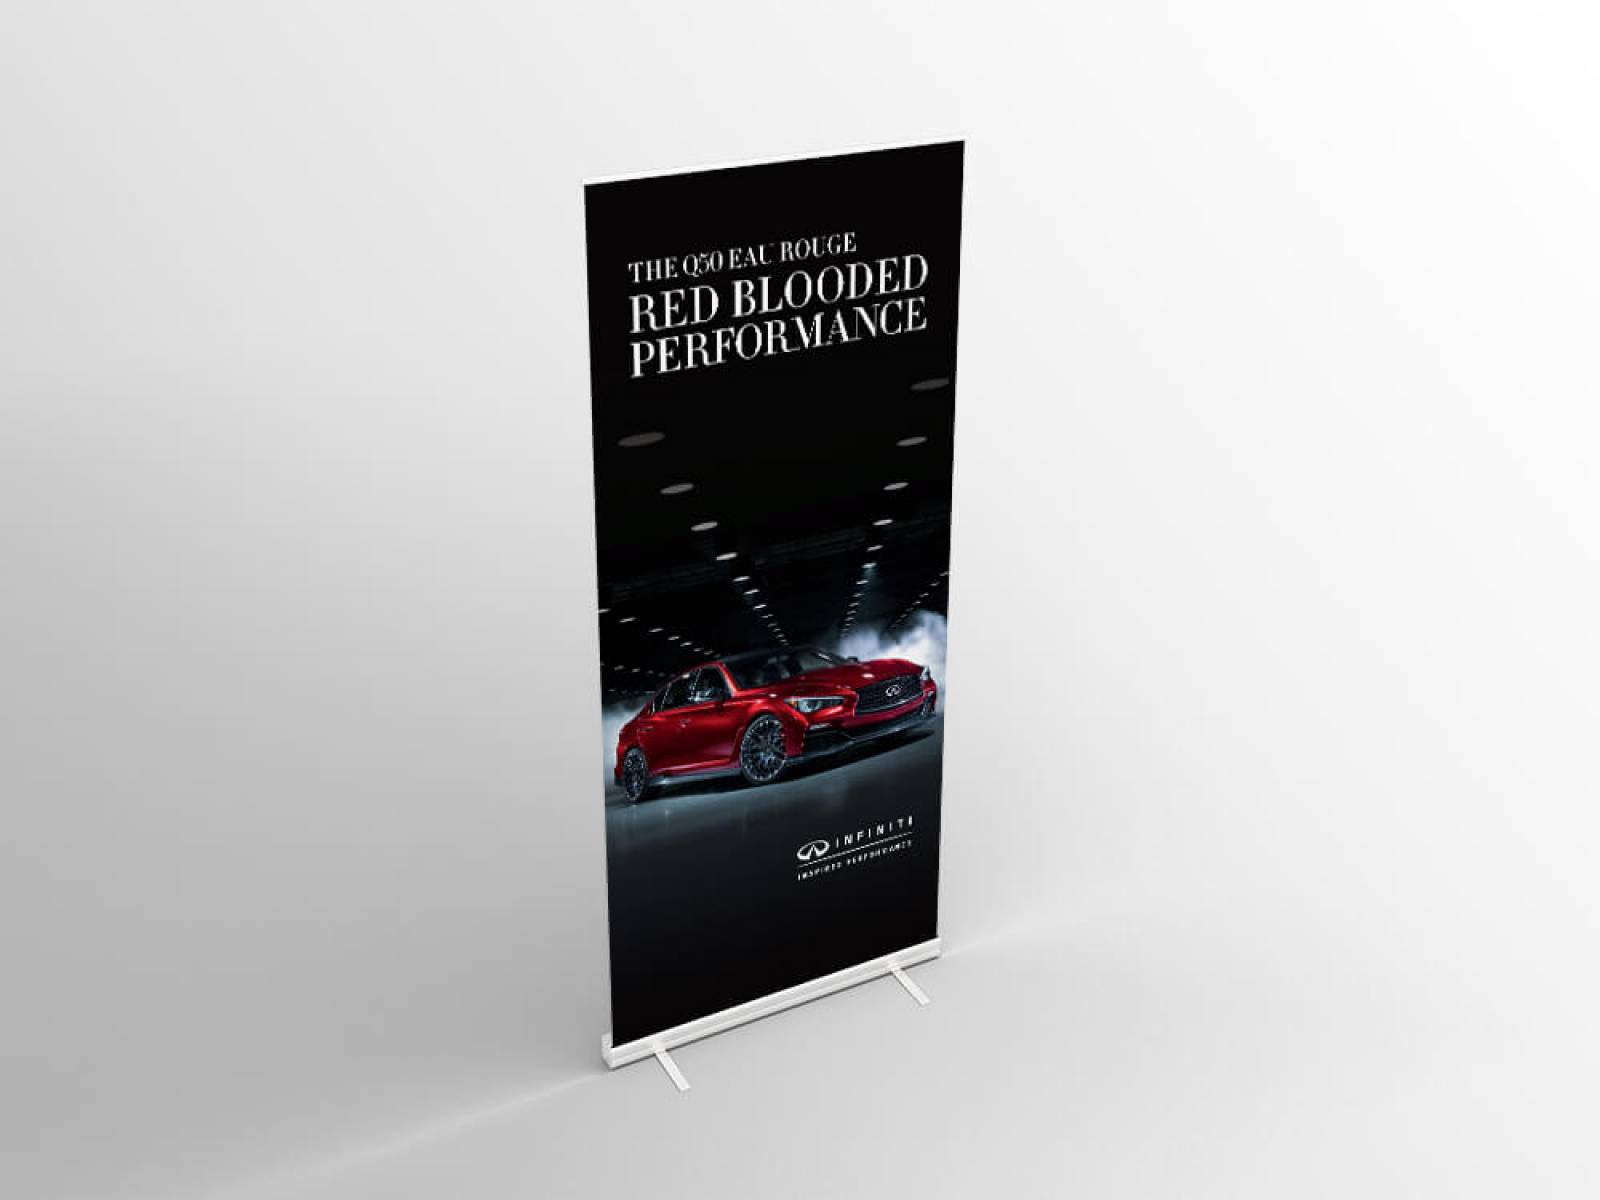 Infiniti-banner-3-design-agency-graphic-design-canterbury.jpg